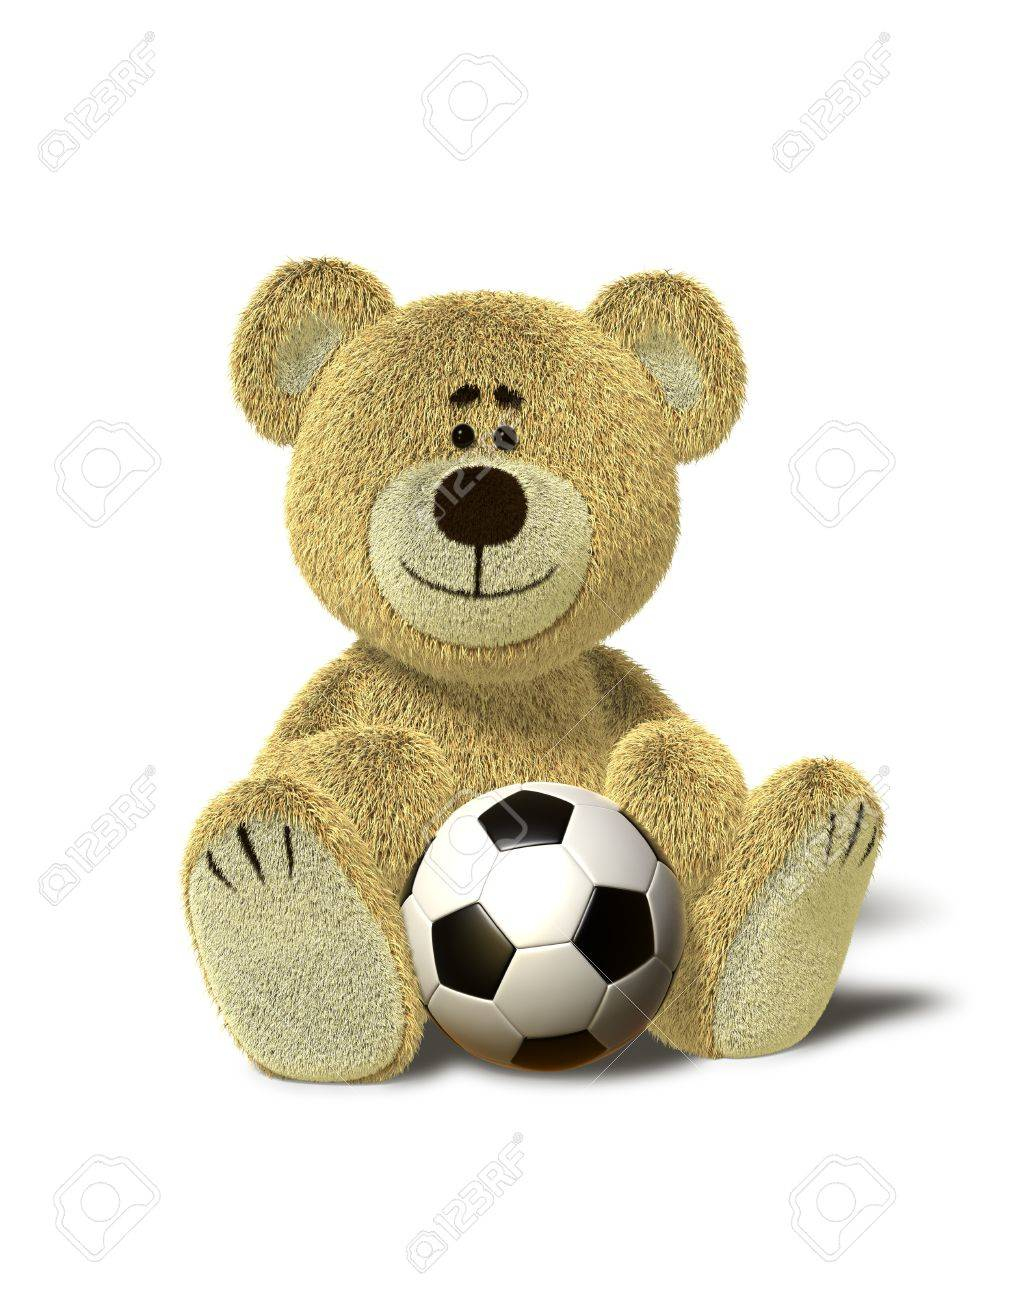 b5d04fb7 A cute teddy bear sits down on the floor with a soccer ball between his legs